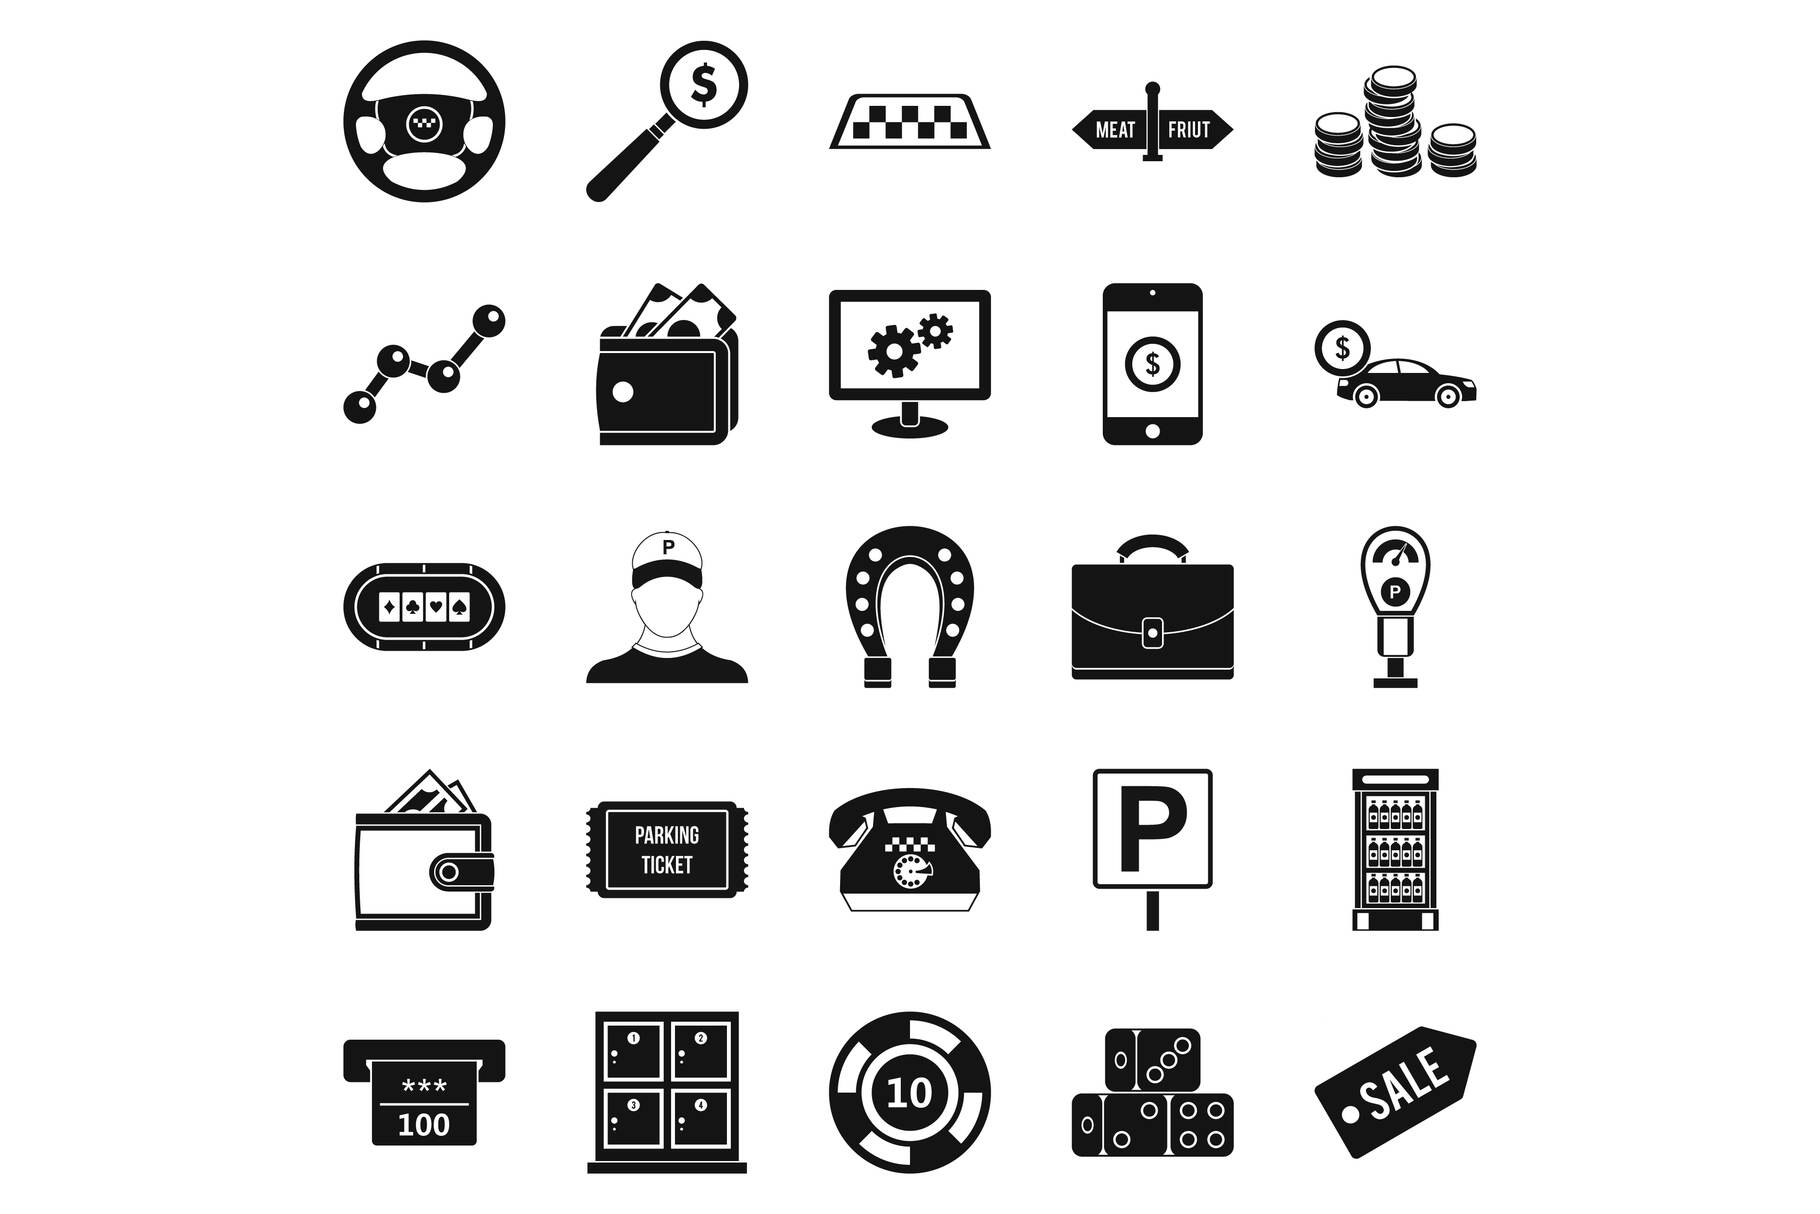 Shiner icons set, simple style example image 1